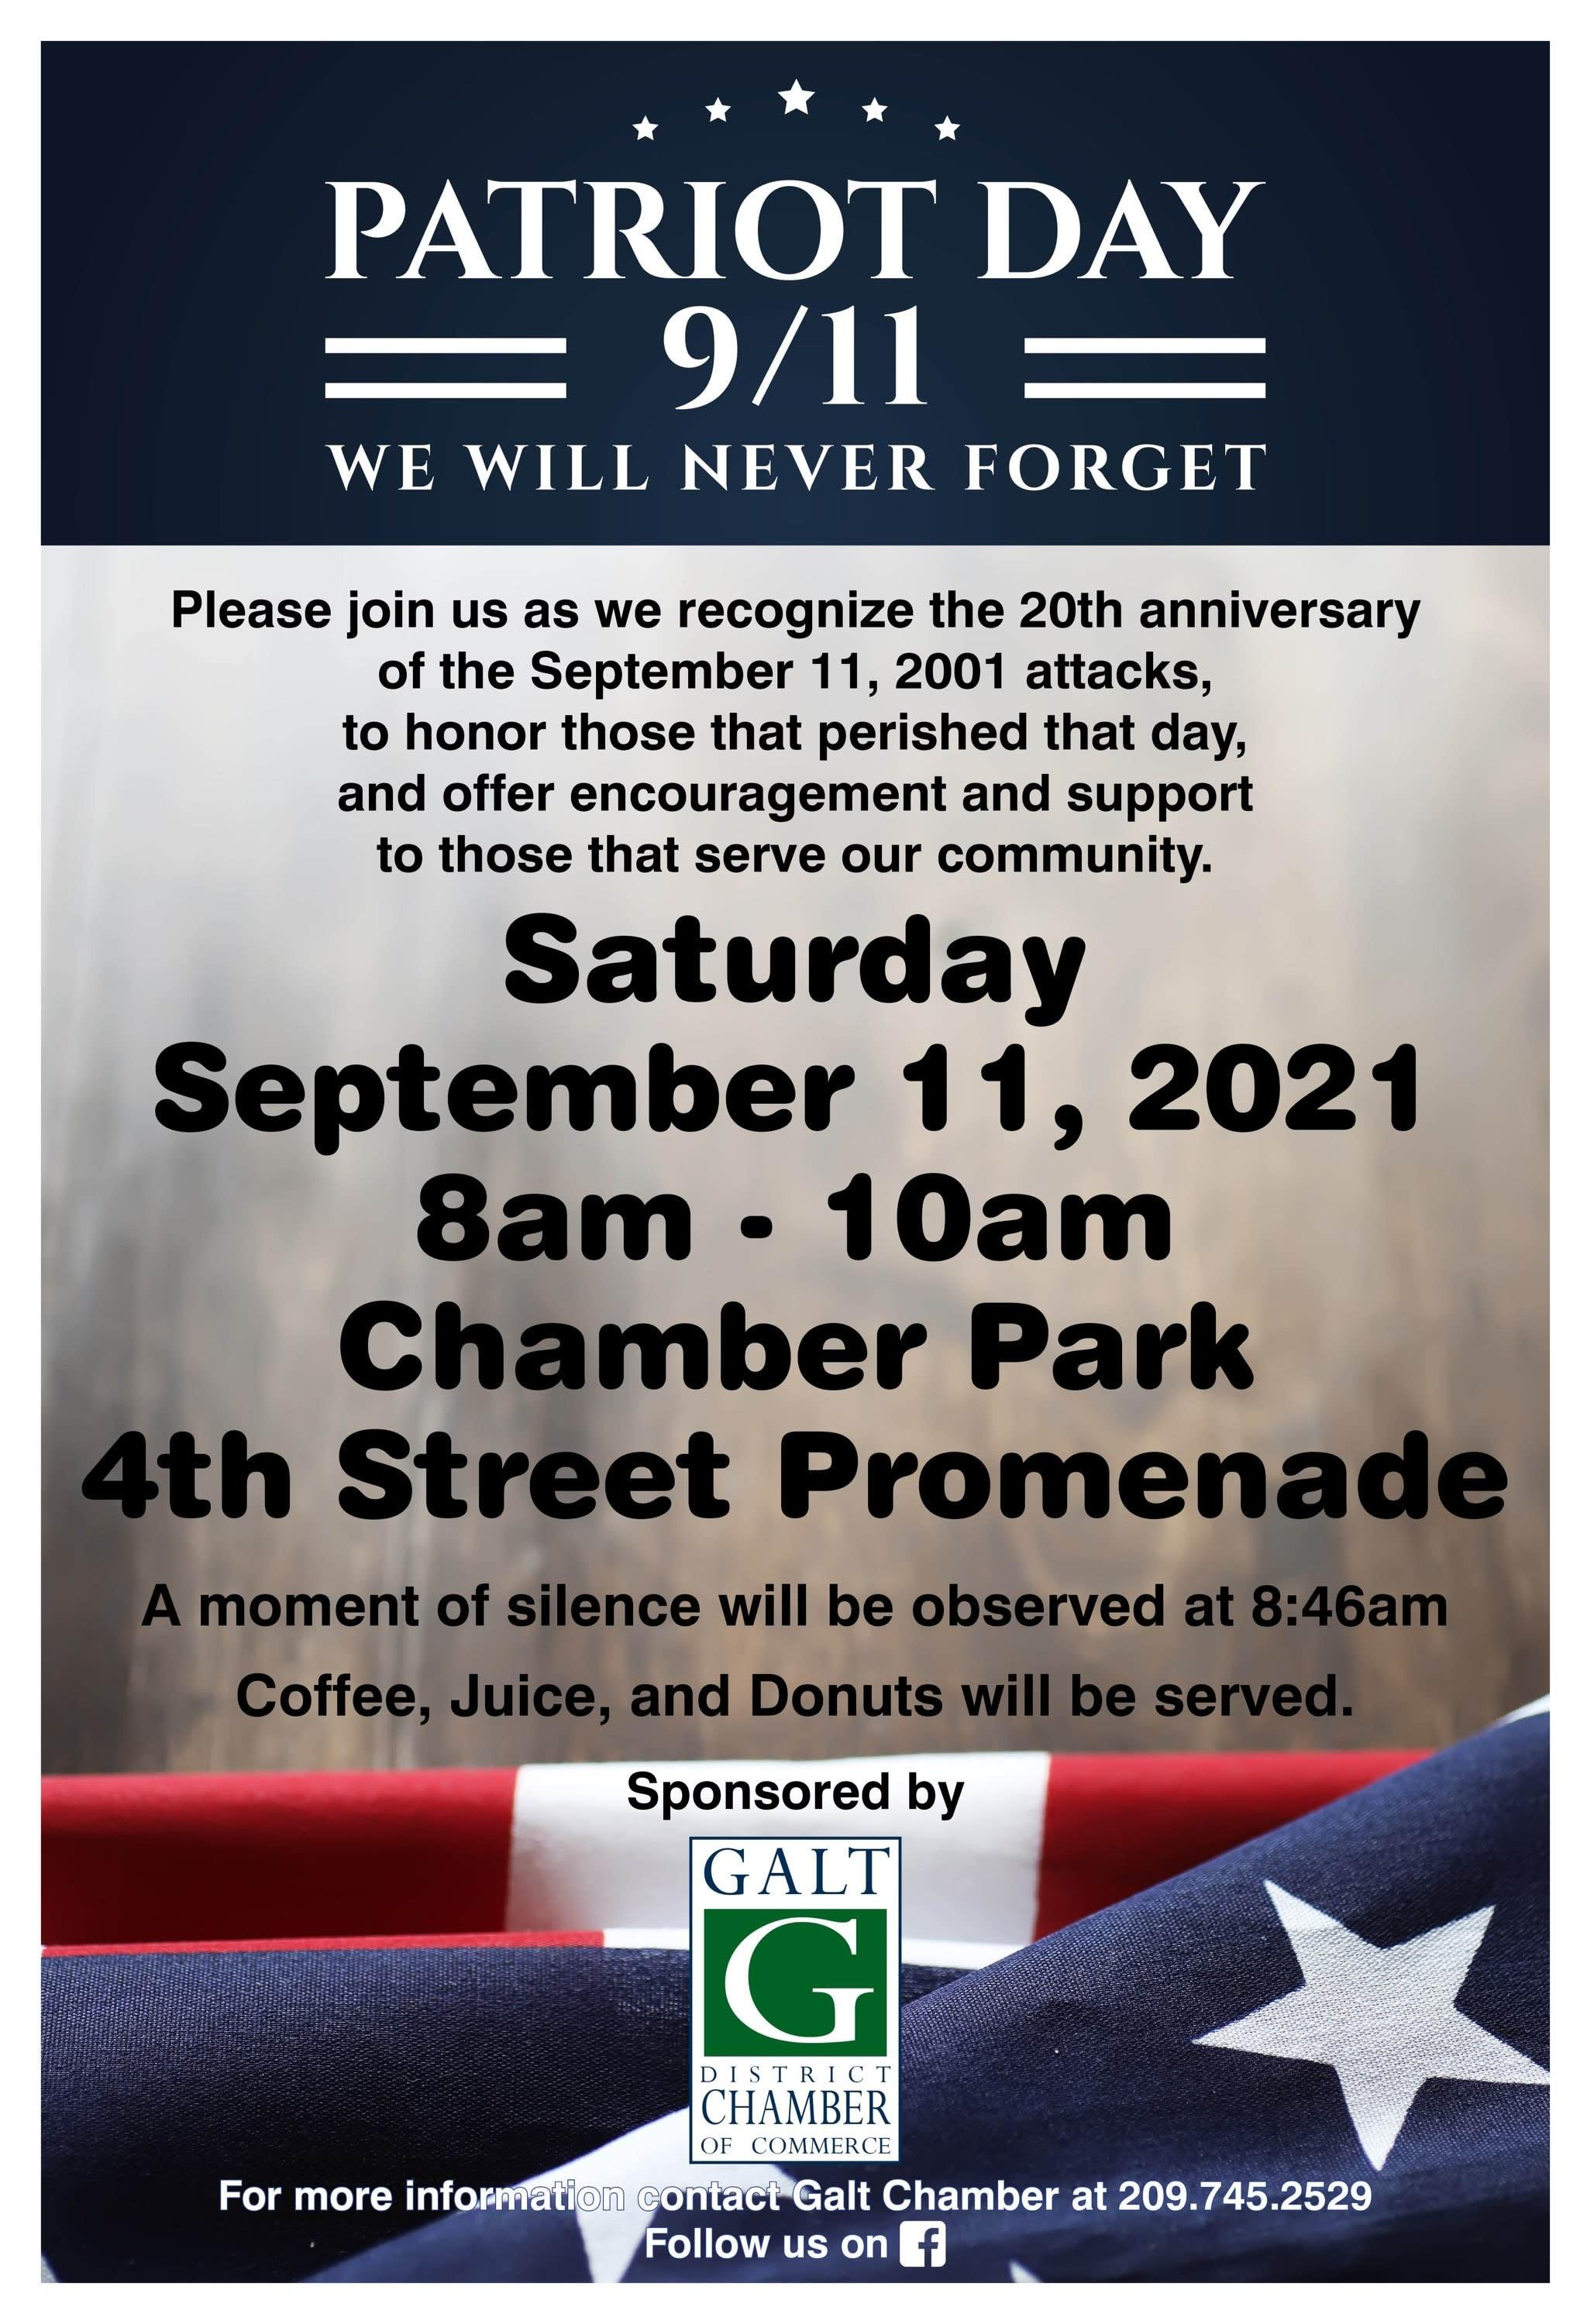 """Patriot Day 9/11 """"We will never forget"""" 20th anniversary of the 911 attacks, Sept 11, 2021 8-10 am, moment of silence at 8:46"""